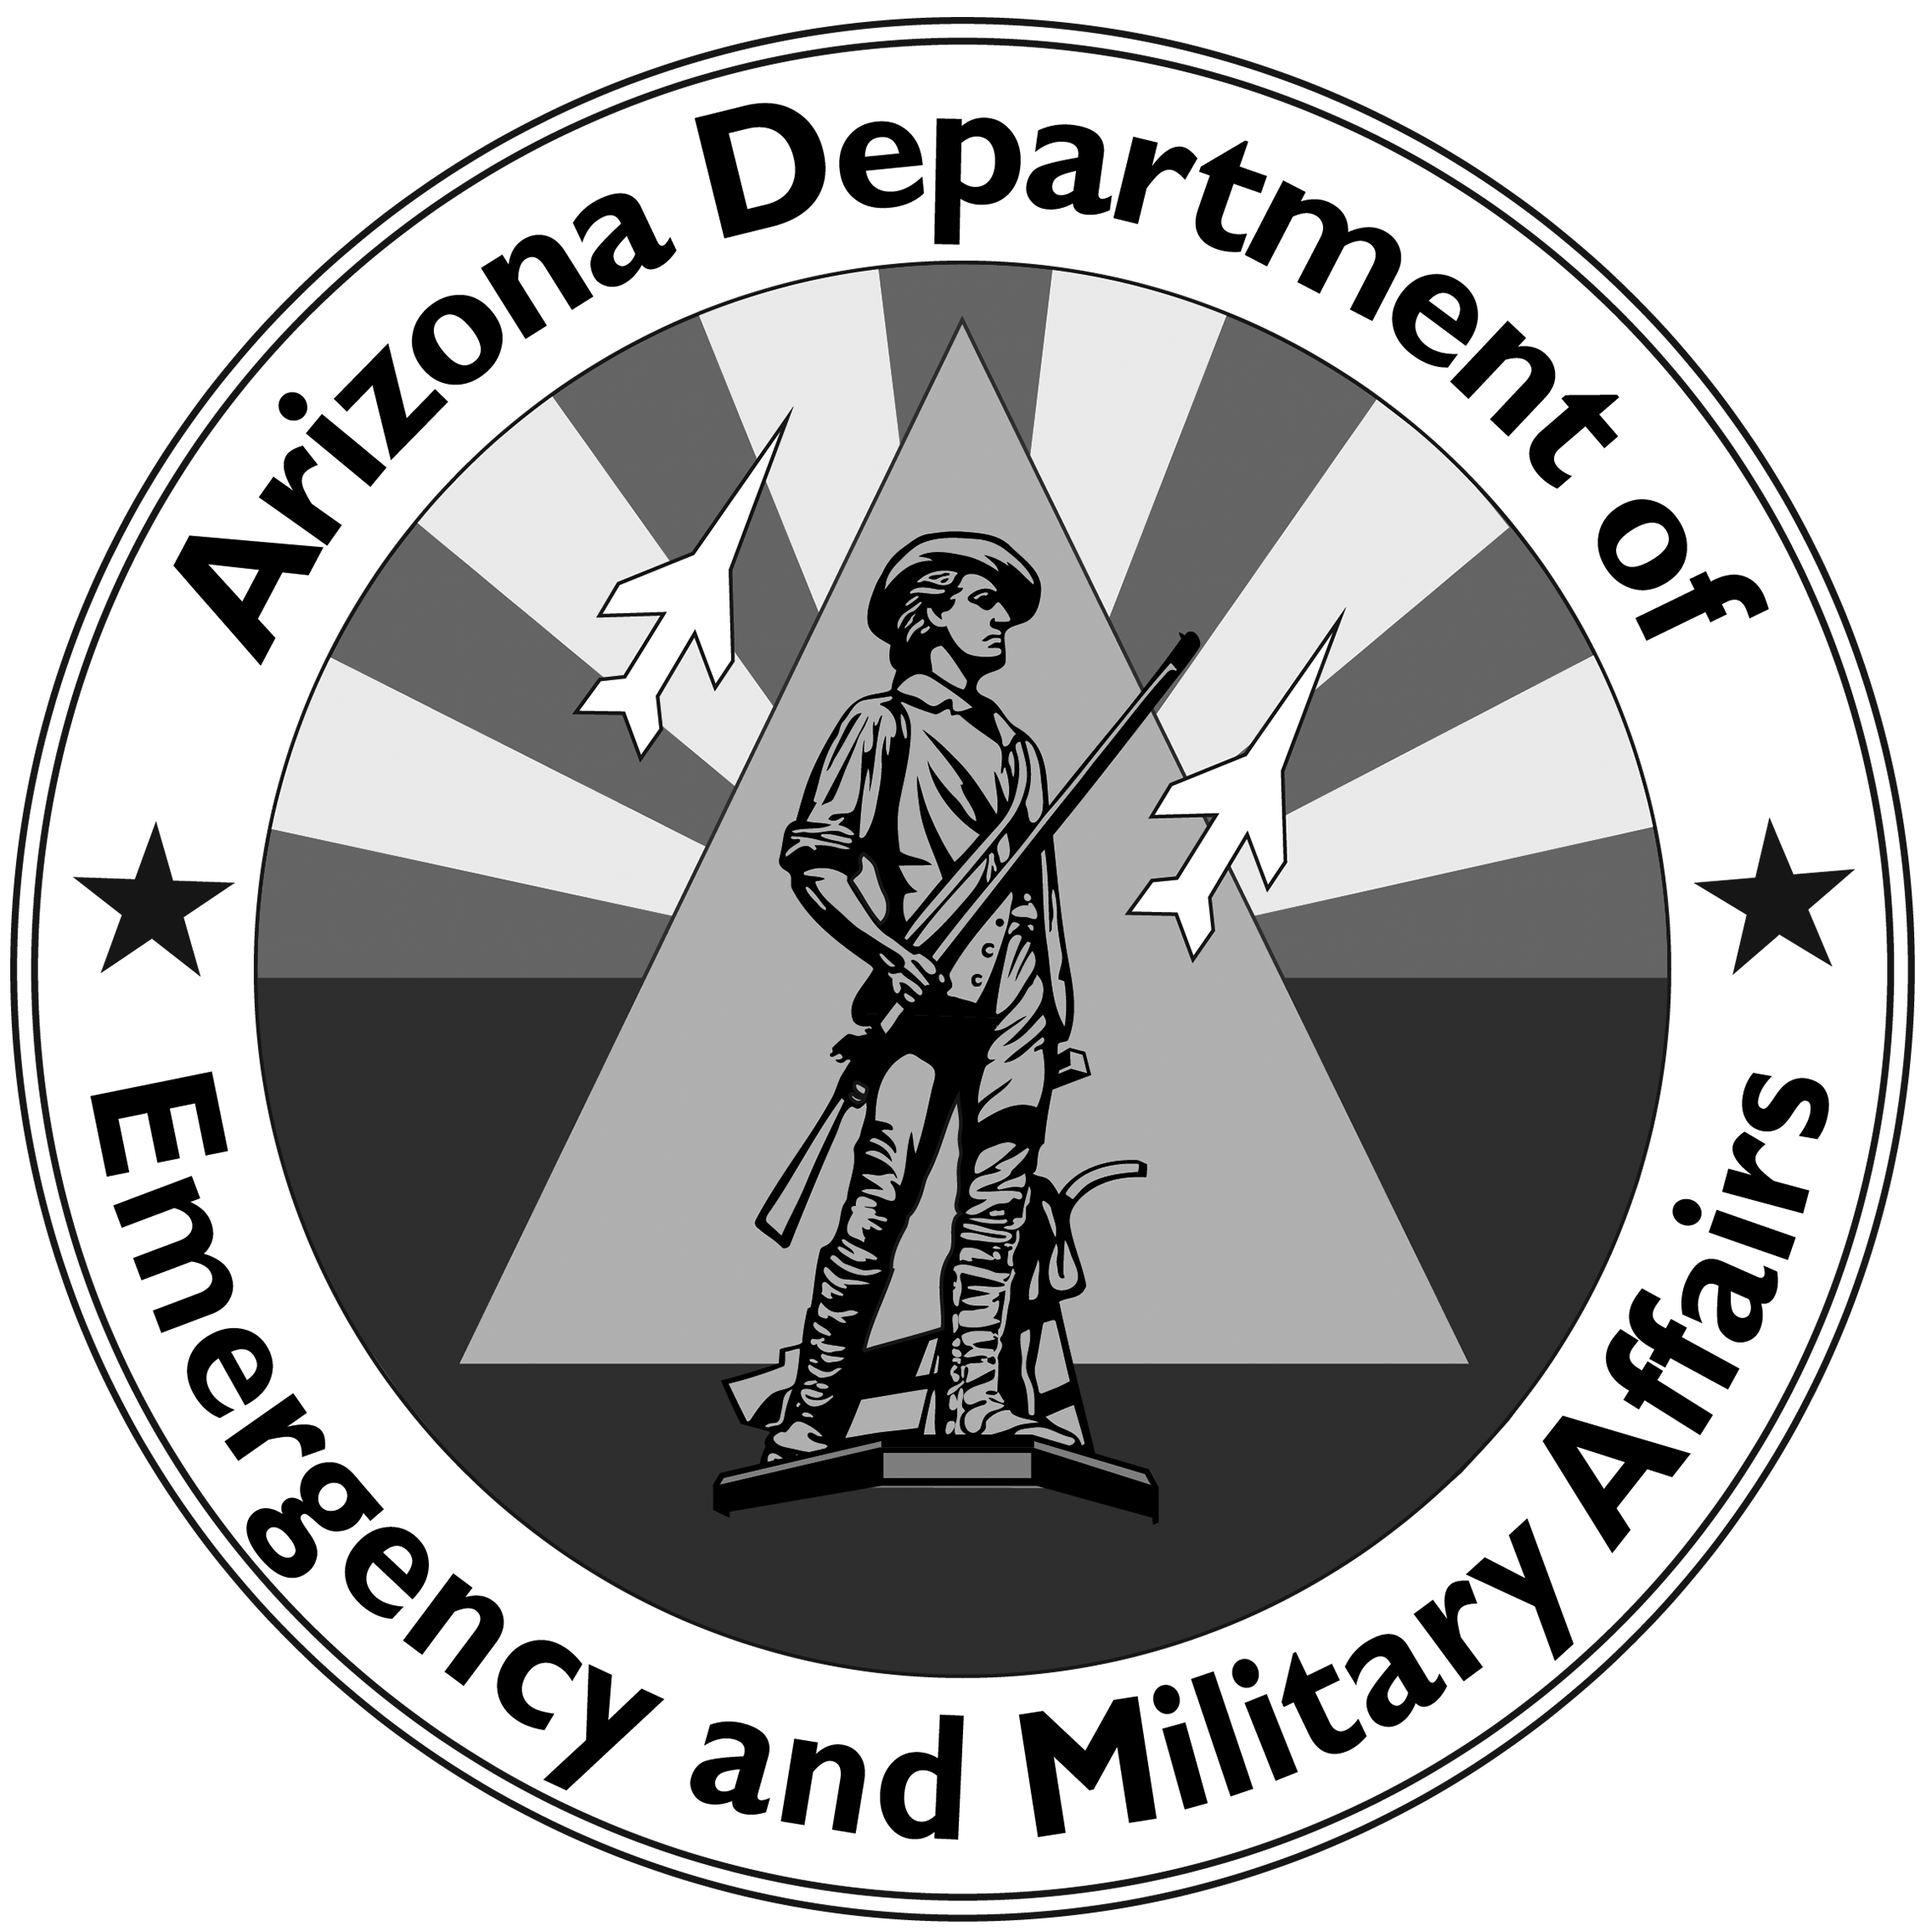 Arizona information network safety. Hurricane clipart emergency preparedness